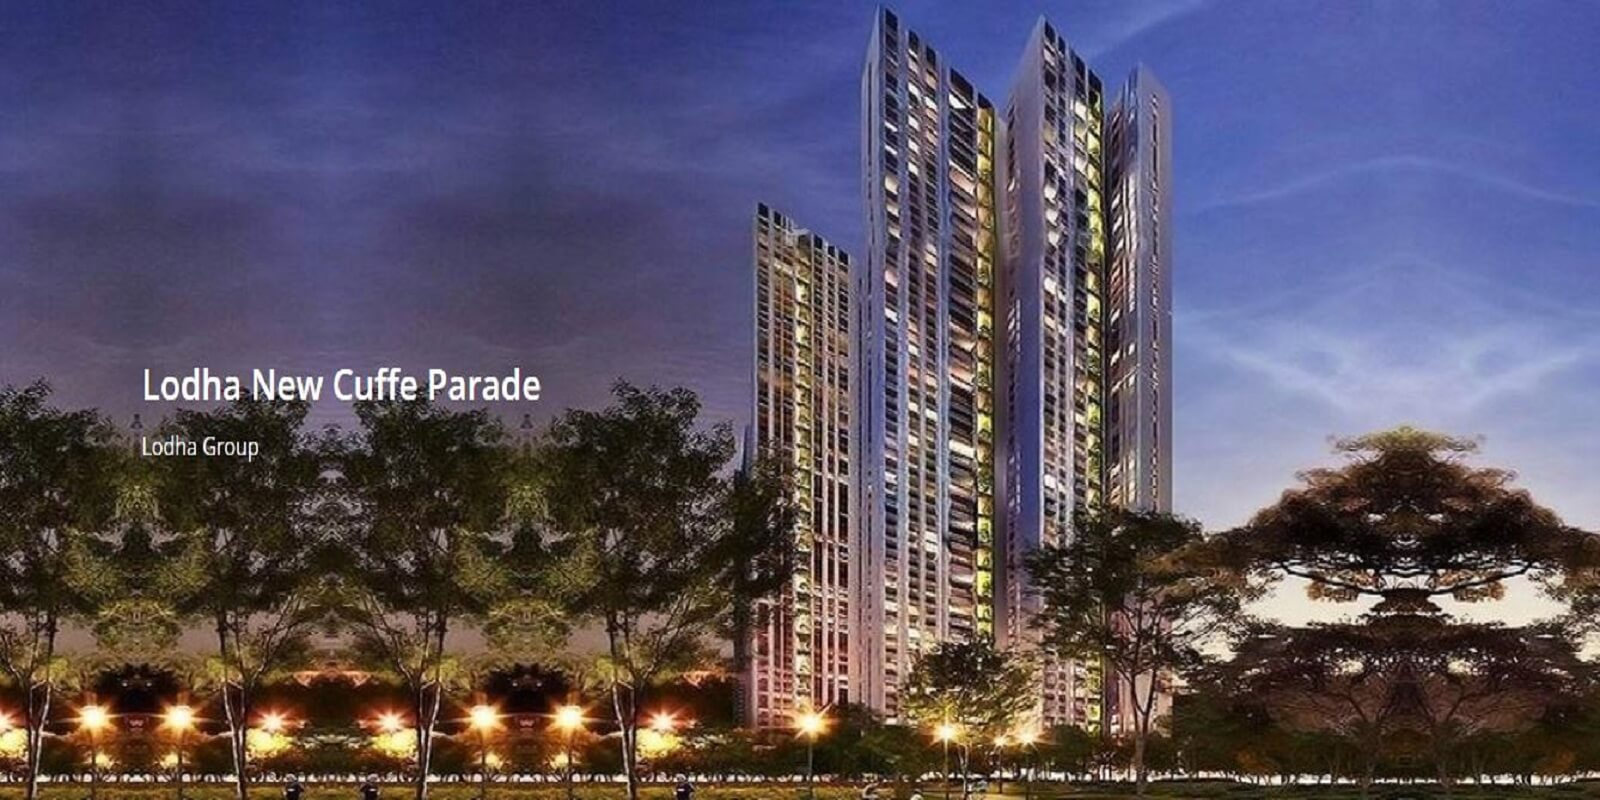 lodha new cuffe parade project large image1